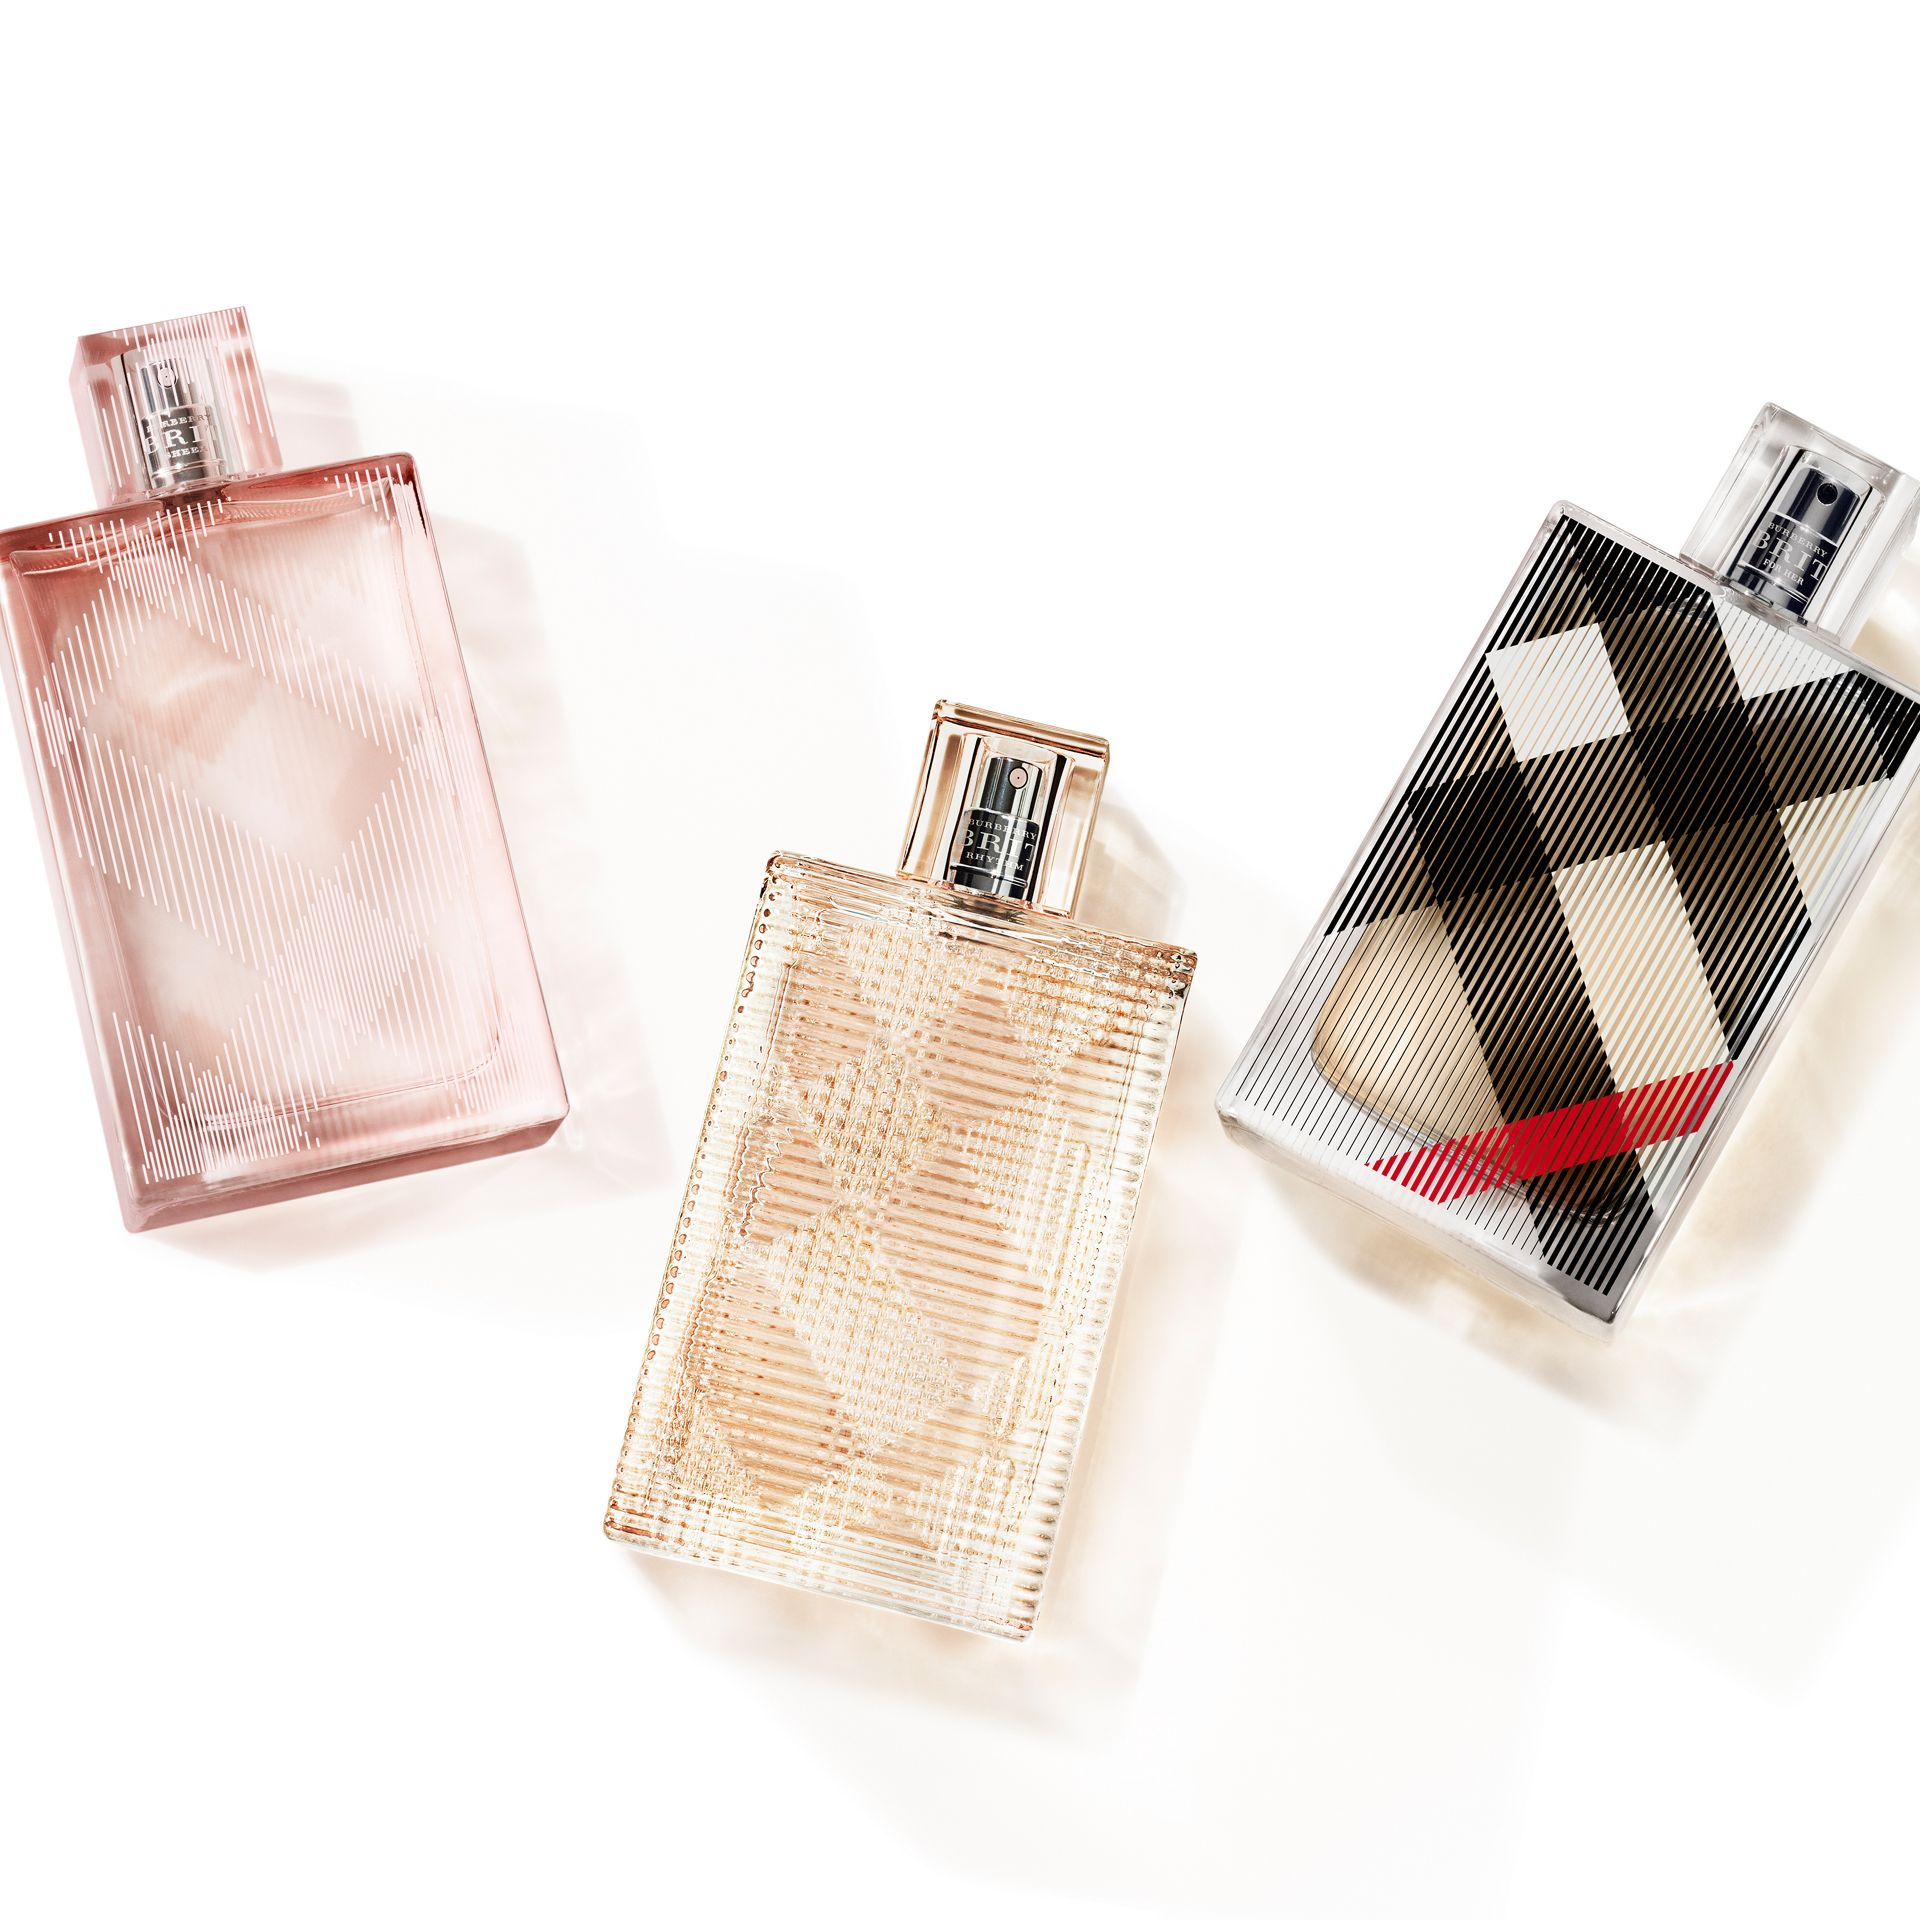 Burberry Brit For Her Eau De Parfum 30 ml - Galerie-Bild 3